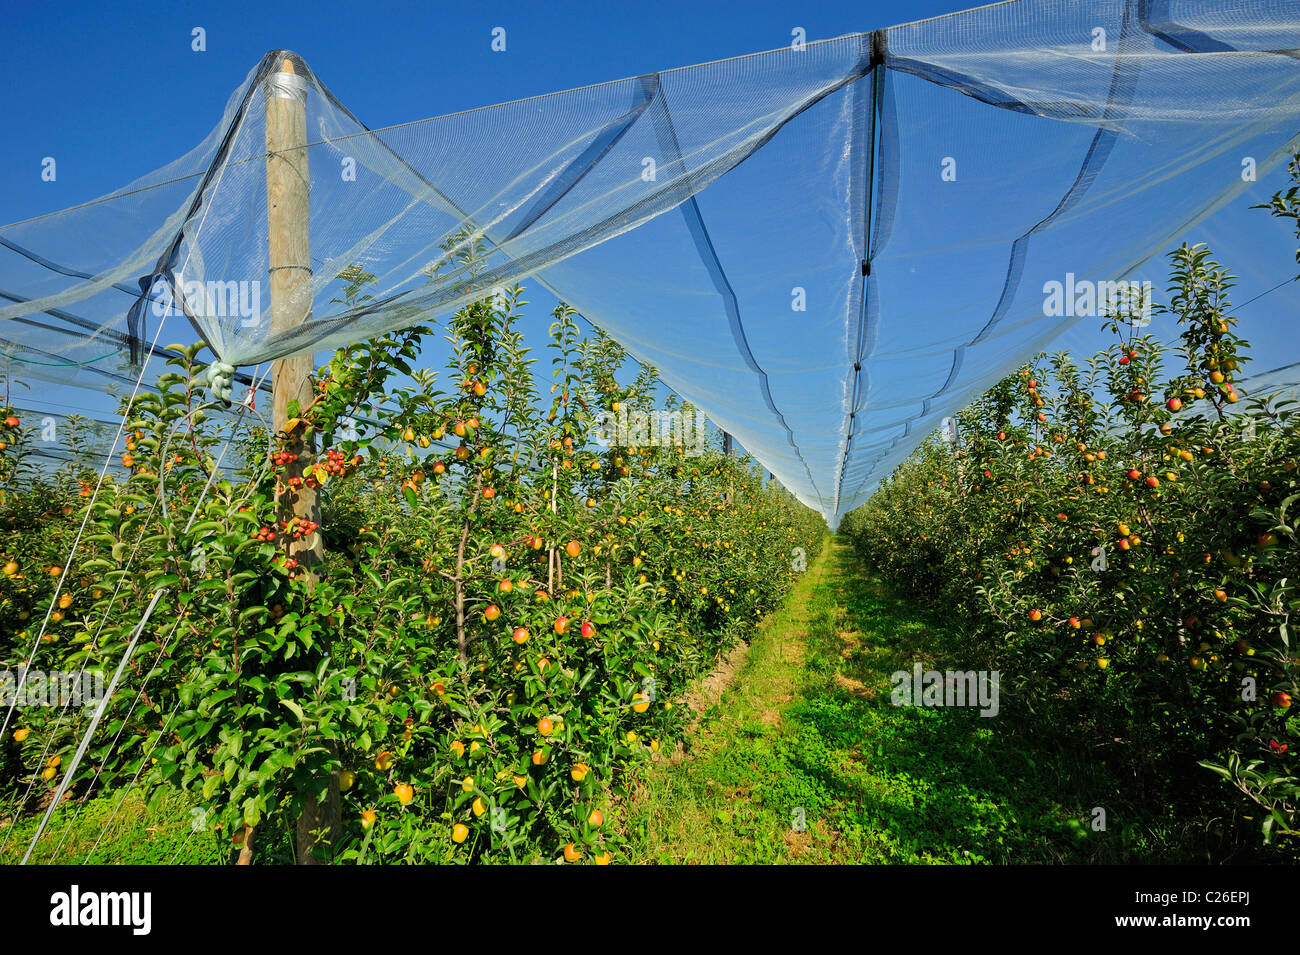 A Swiss apple orchard with hail protection nets. A crab apple pollen-producing tree is planted at the end of the - Stock Image